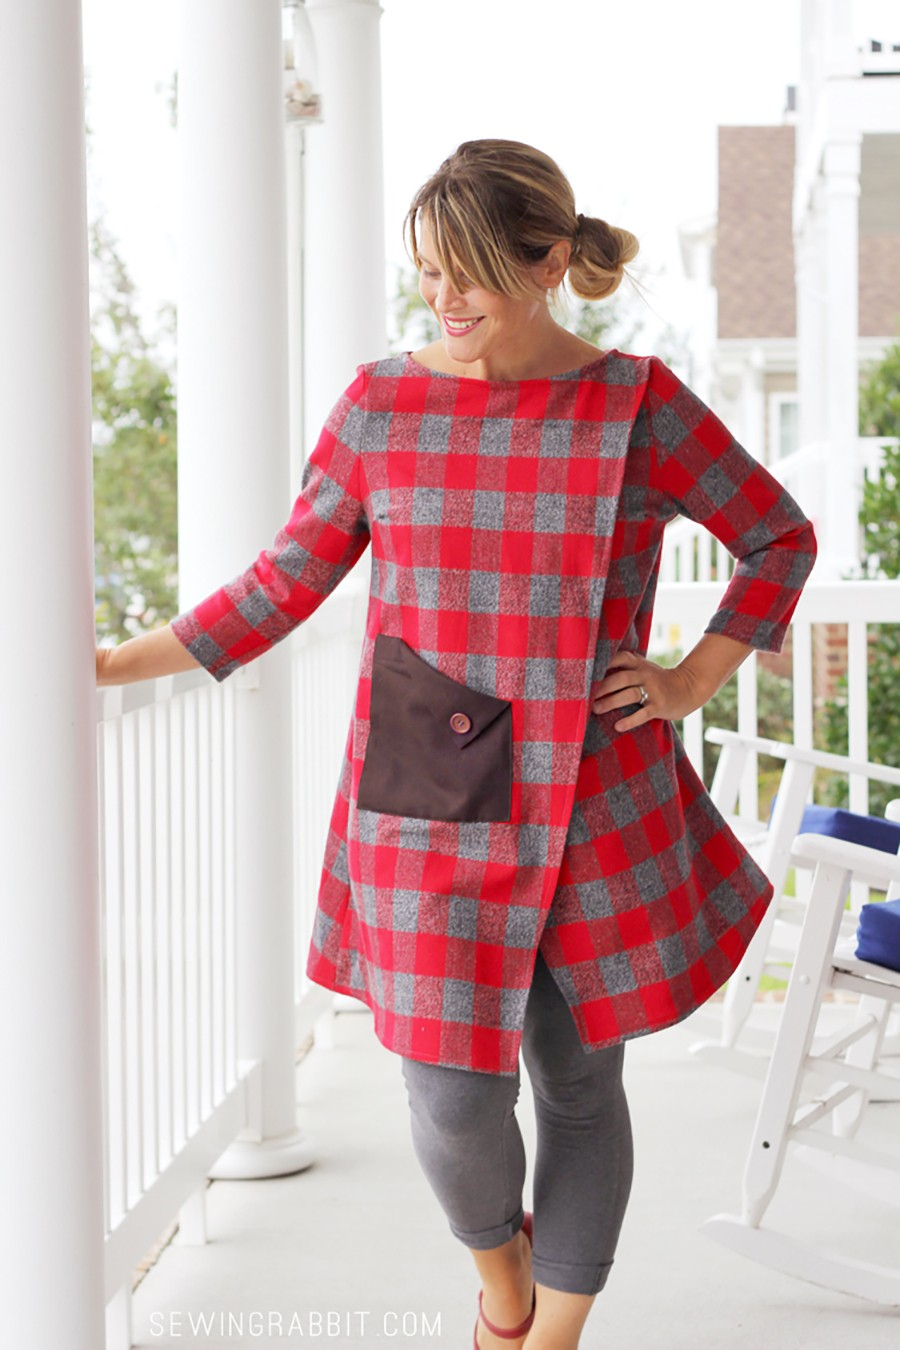 FALL FASHION: Make this flannel wrap dress